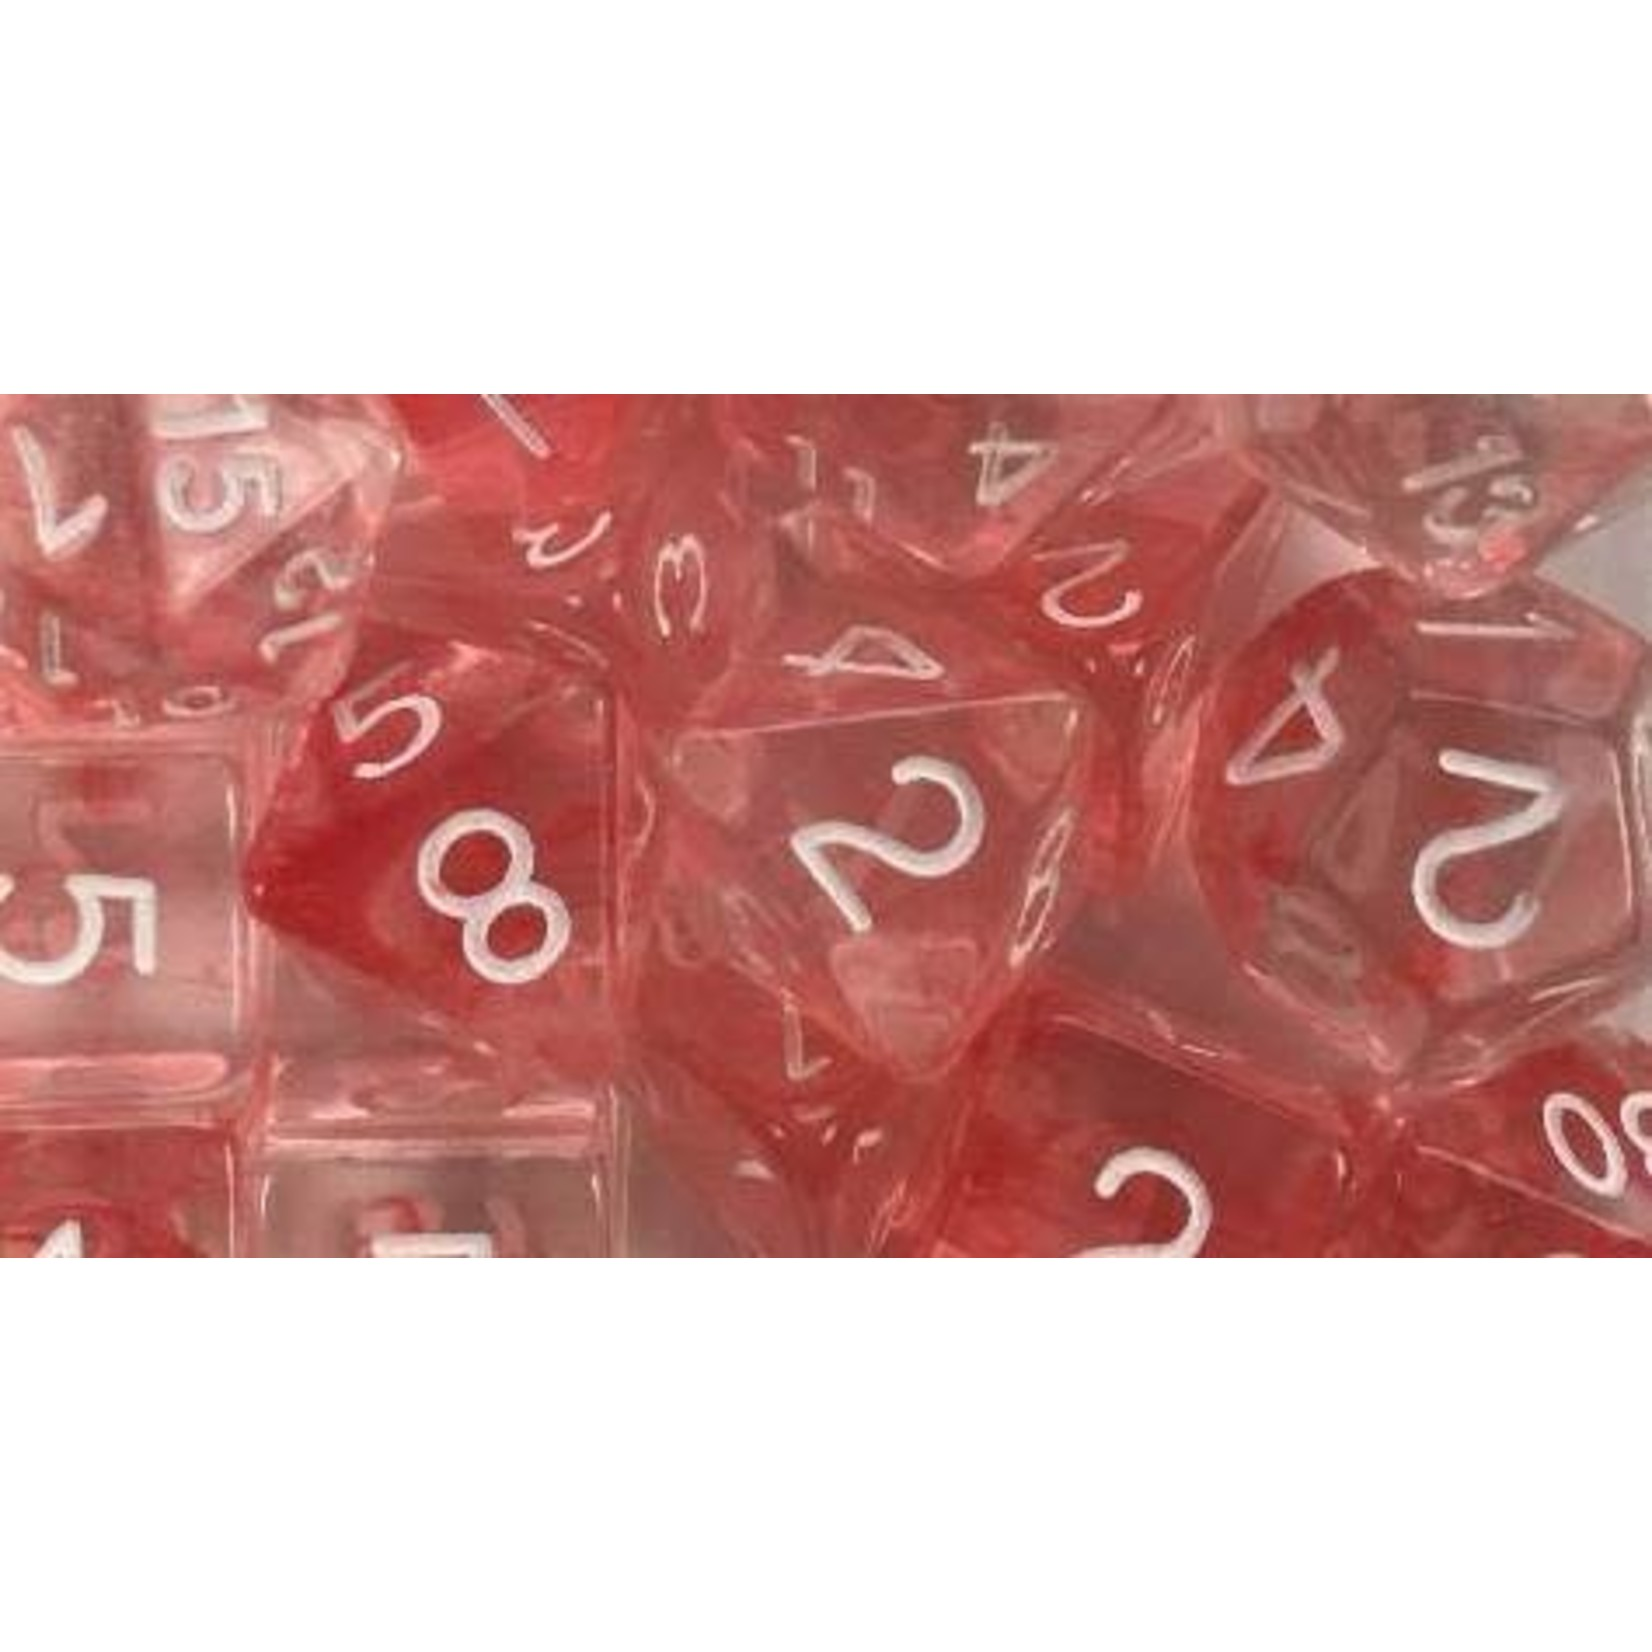 Roll 4 Initiative Polyhedral Dice: Diffusion Cherry White - Set of 15